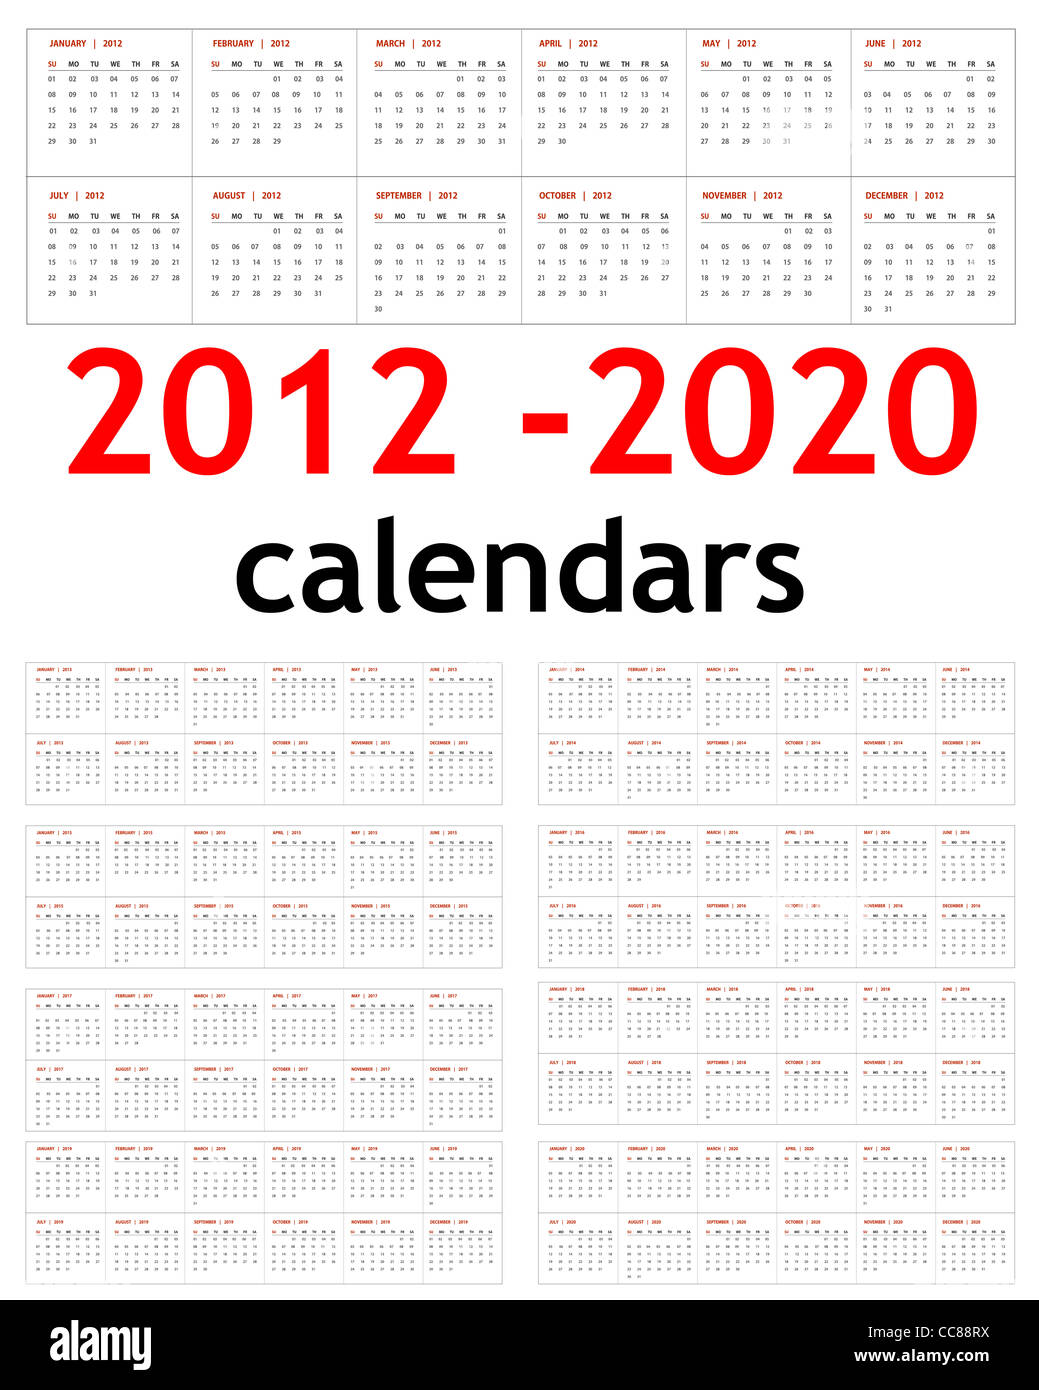 2013 And 2014 And 2020 Calendar New year 2012, 2013, 2014, 2015, 2016, 2017, 2018, 2019, 2020